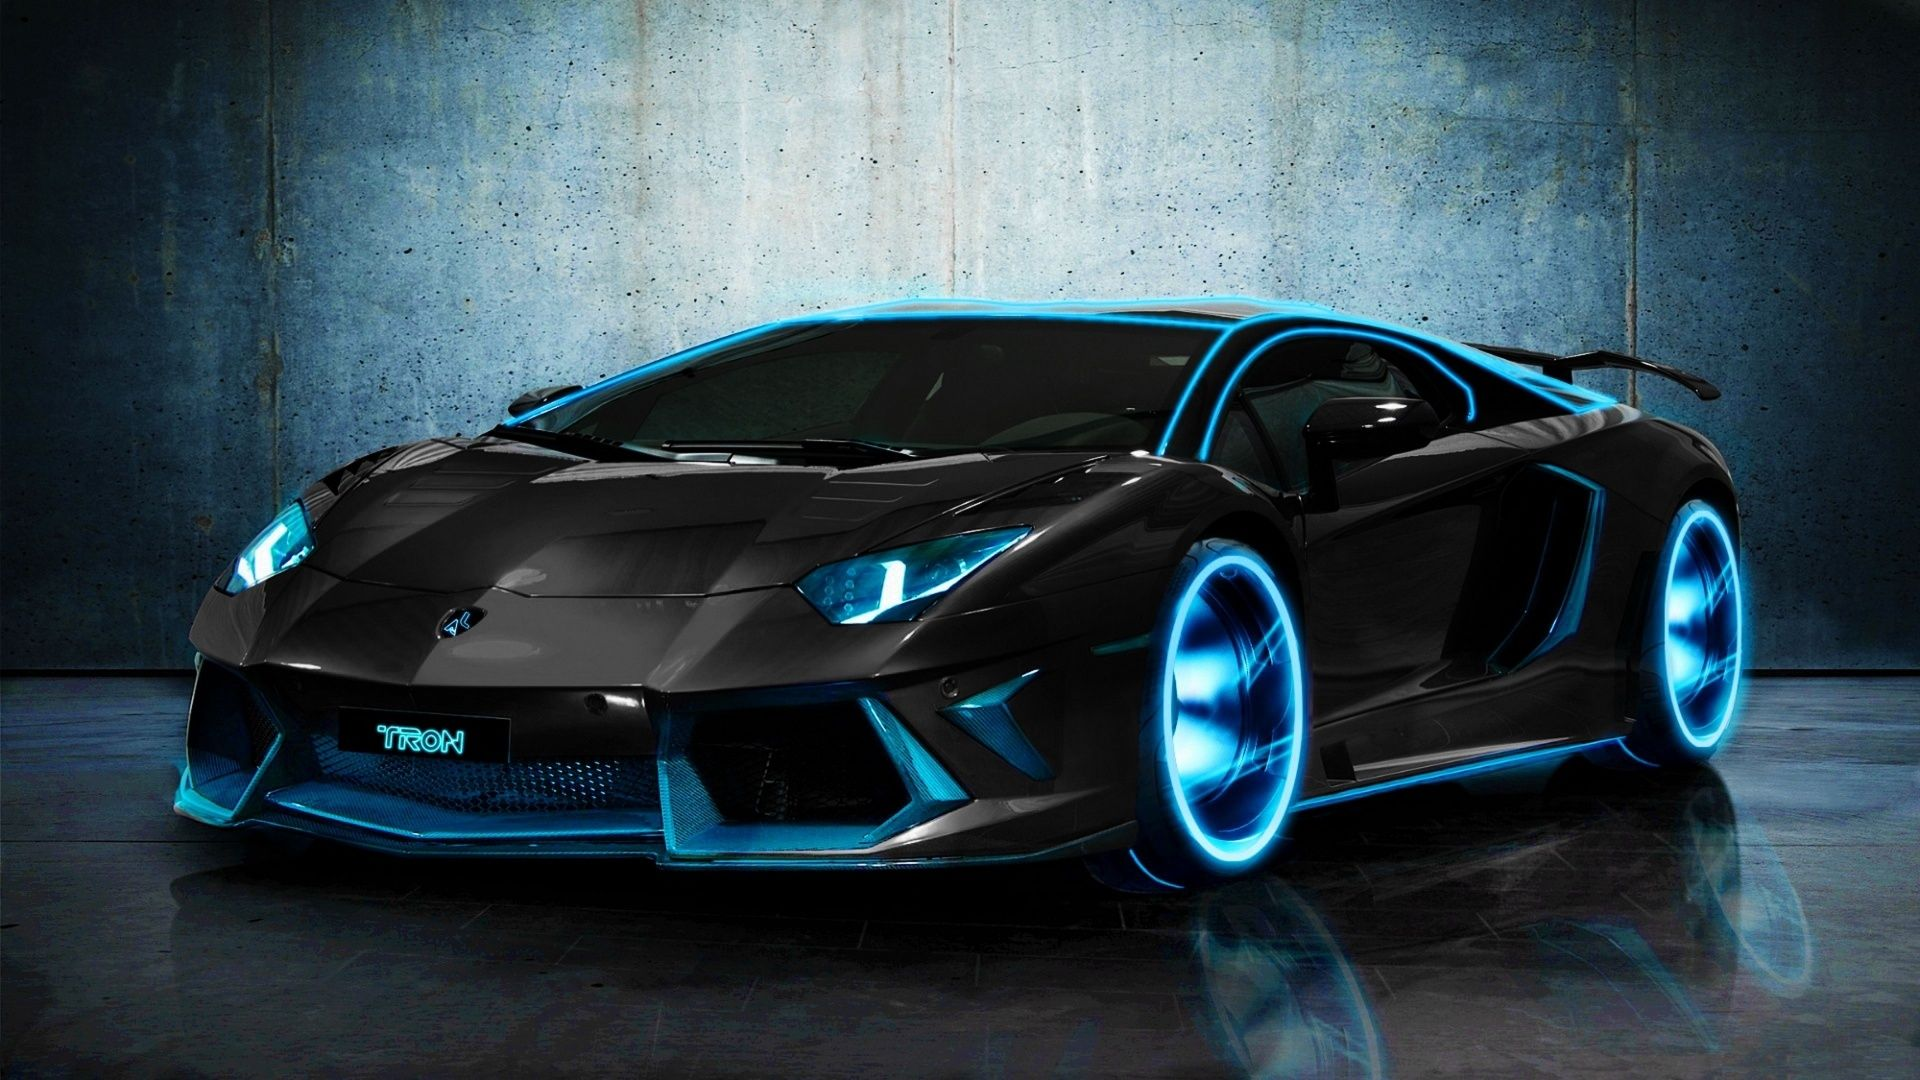 Wallpapers Full HD 1080p Lamborghini New 2015 1920x1080